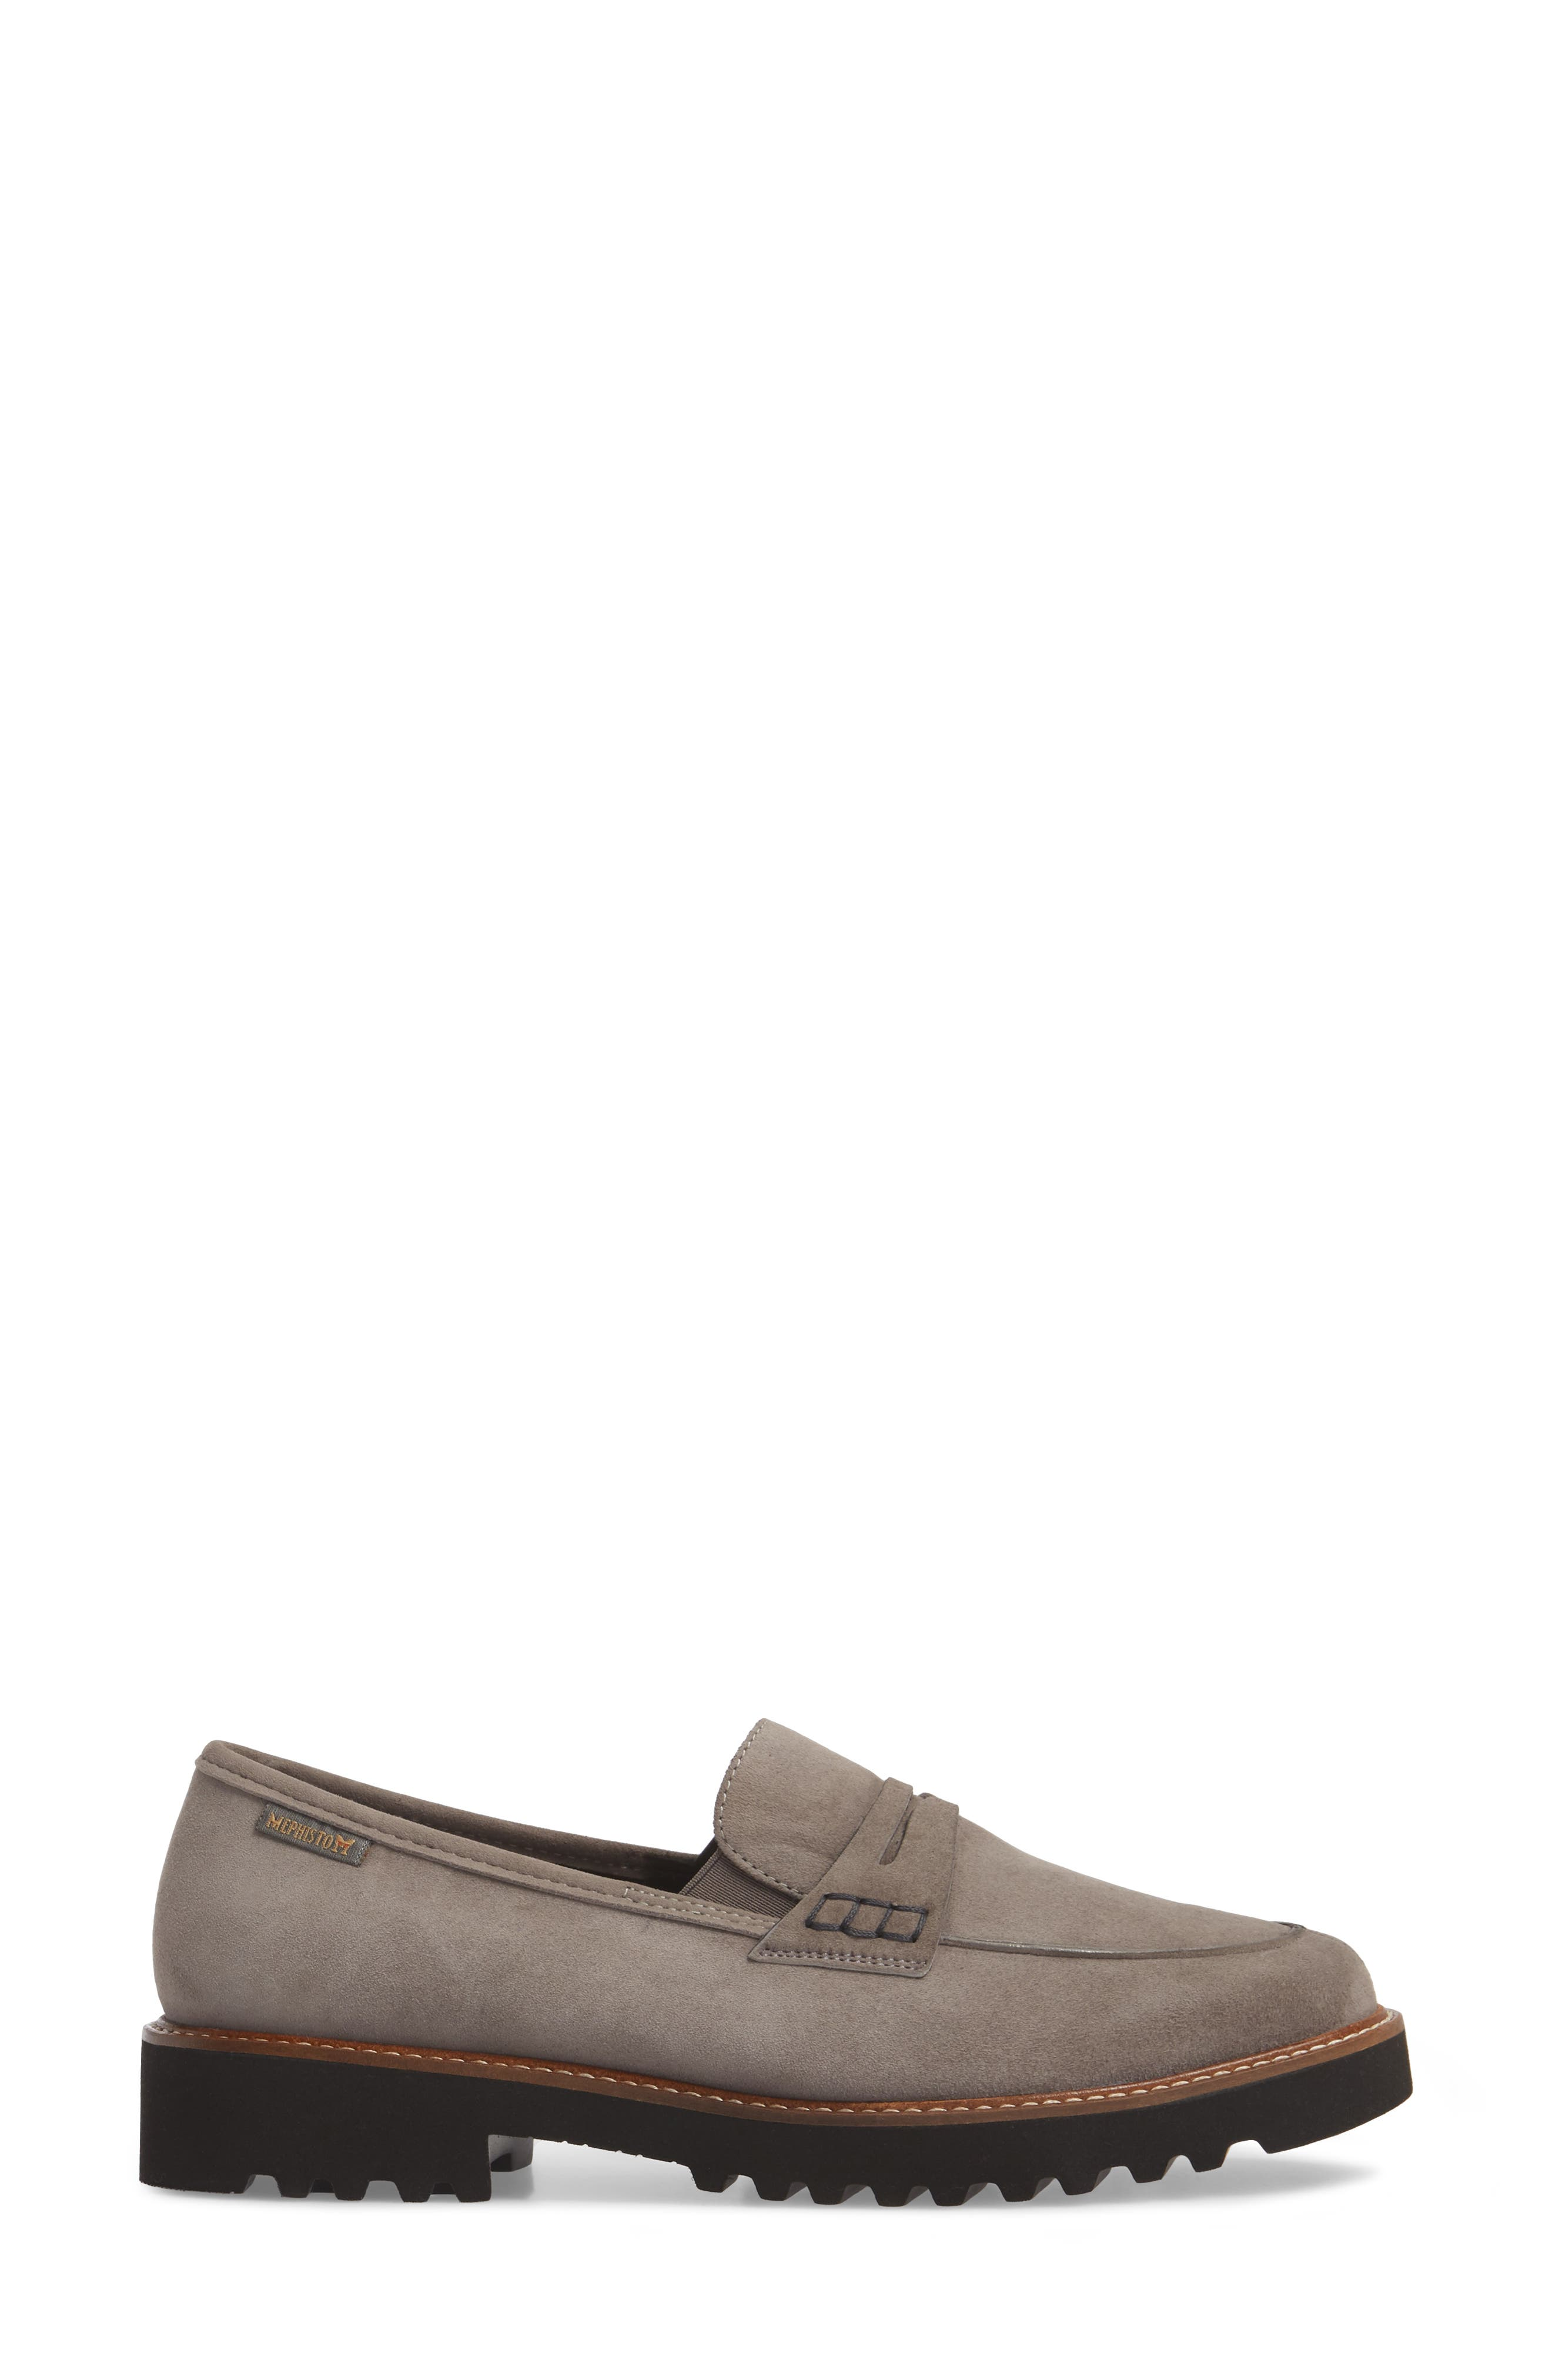 MEPHISTO, Sidney Penny Loafer, Alternate thumbnail 3, color, GREY SUEDE